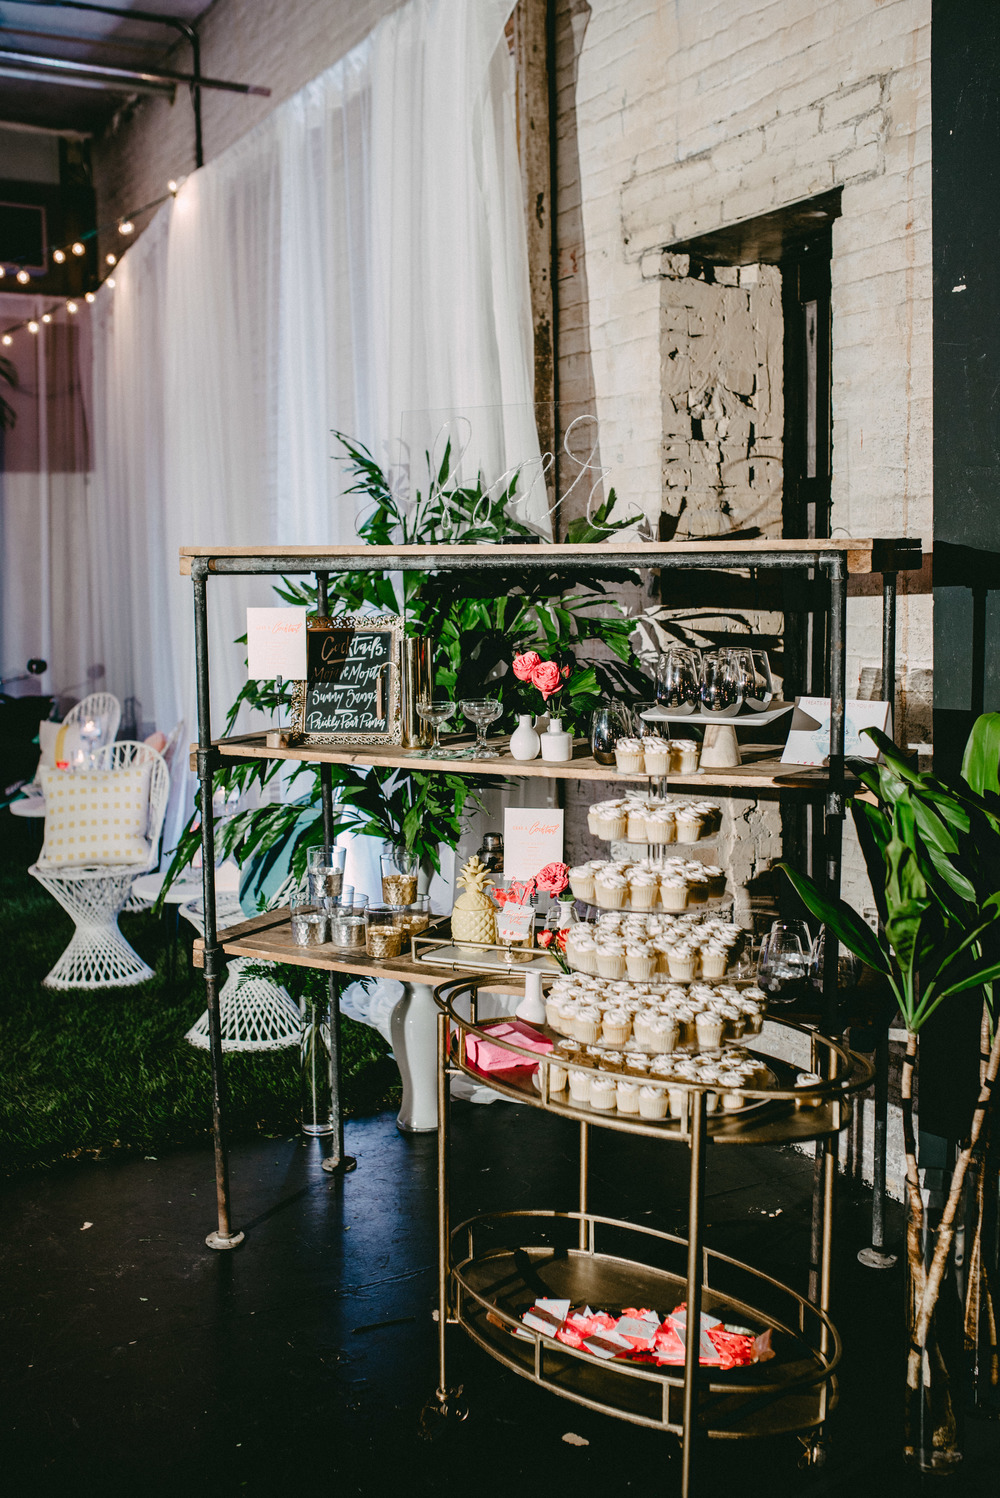 Amanda Marie Studio | Ila Studio | The White Room | Sadie's Florals | Printerette Press | Hooked Calligraphy | Collected Rentals | Beauty Lounge | Goldfine Jewelry | Laura Rae Photography